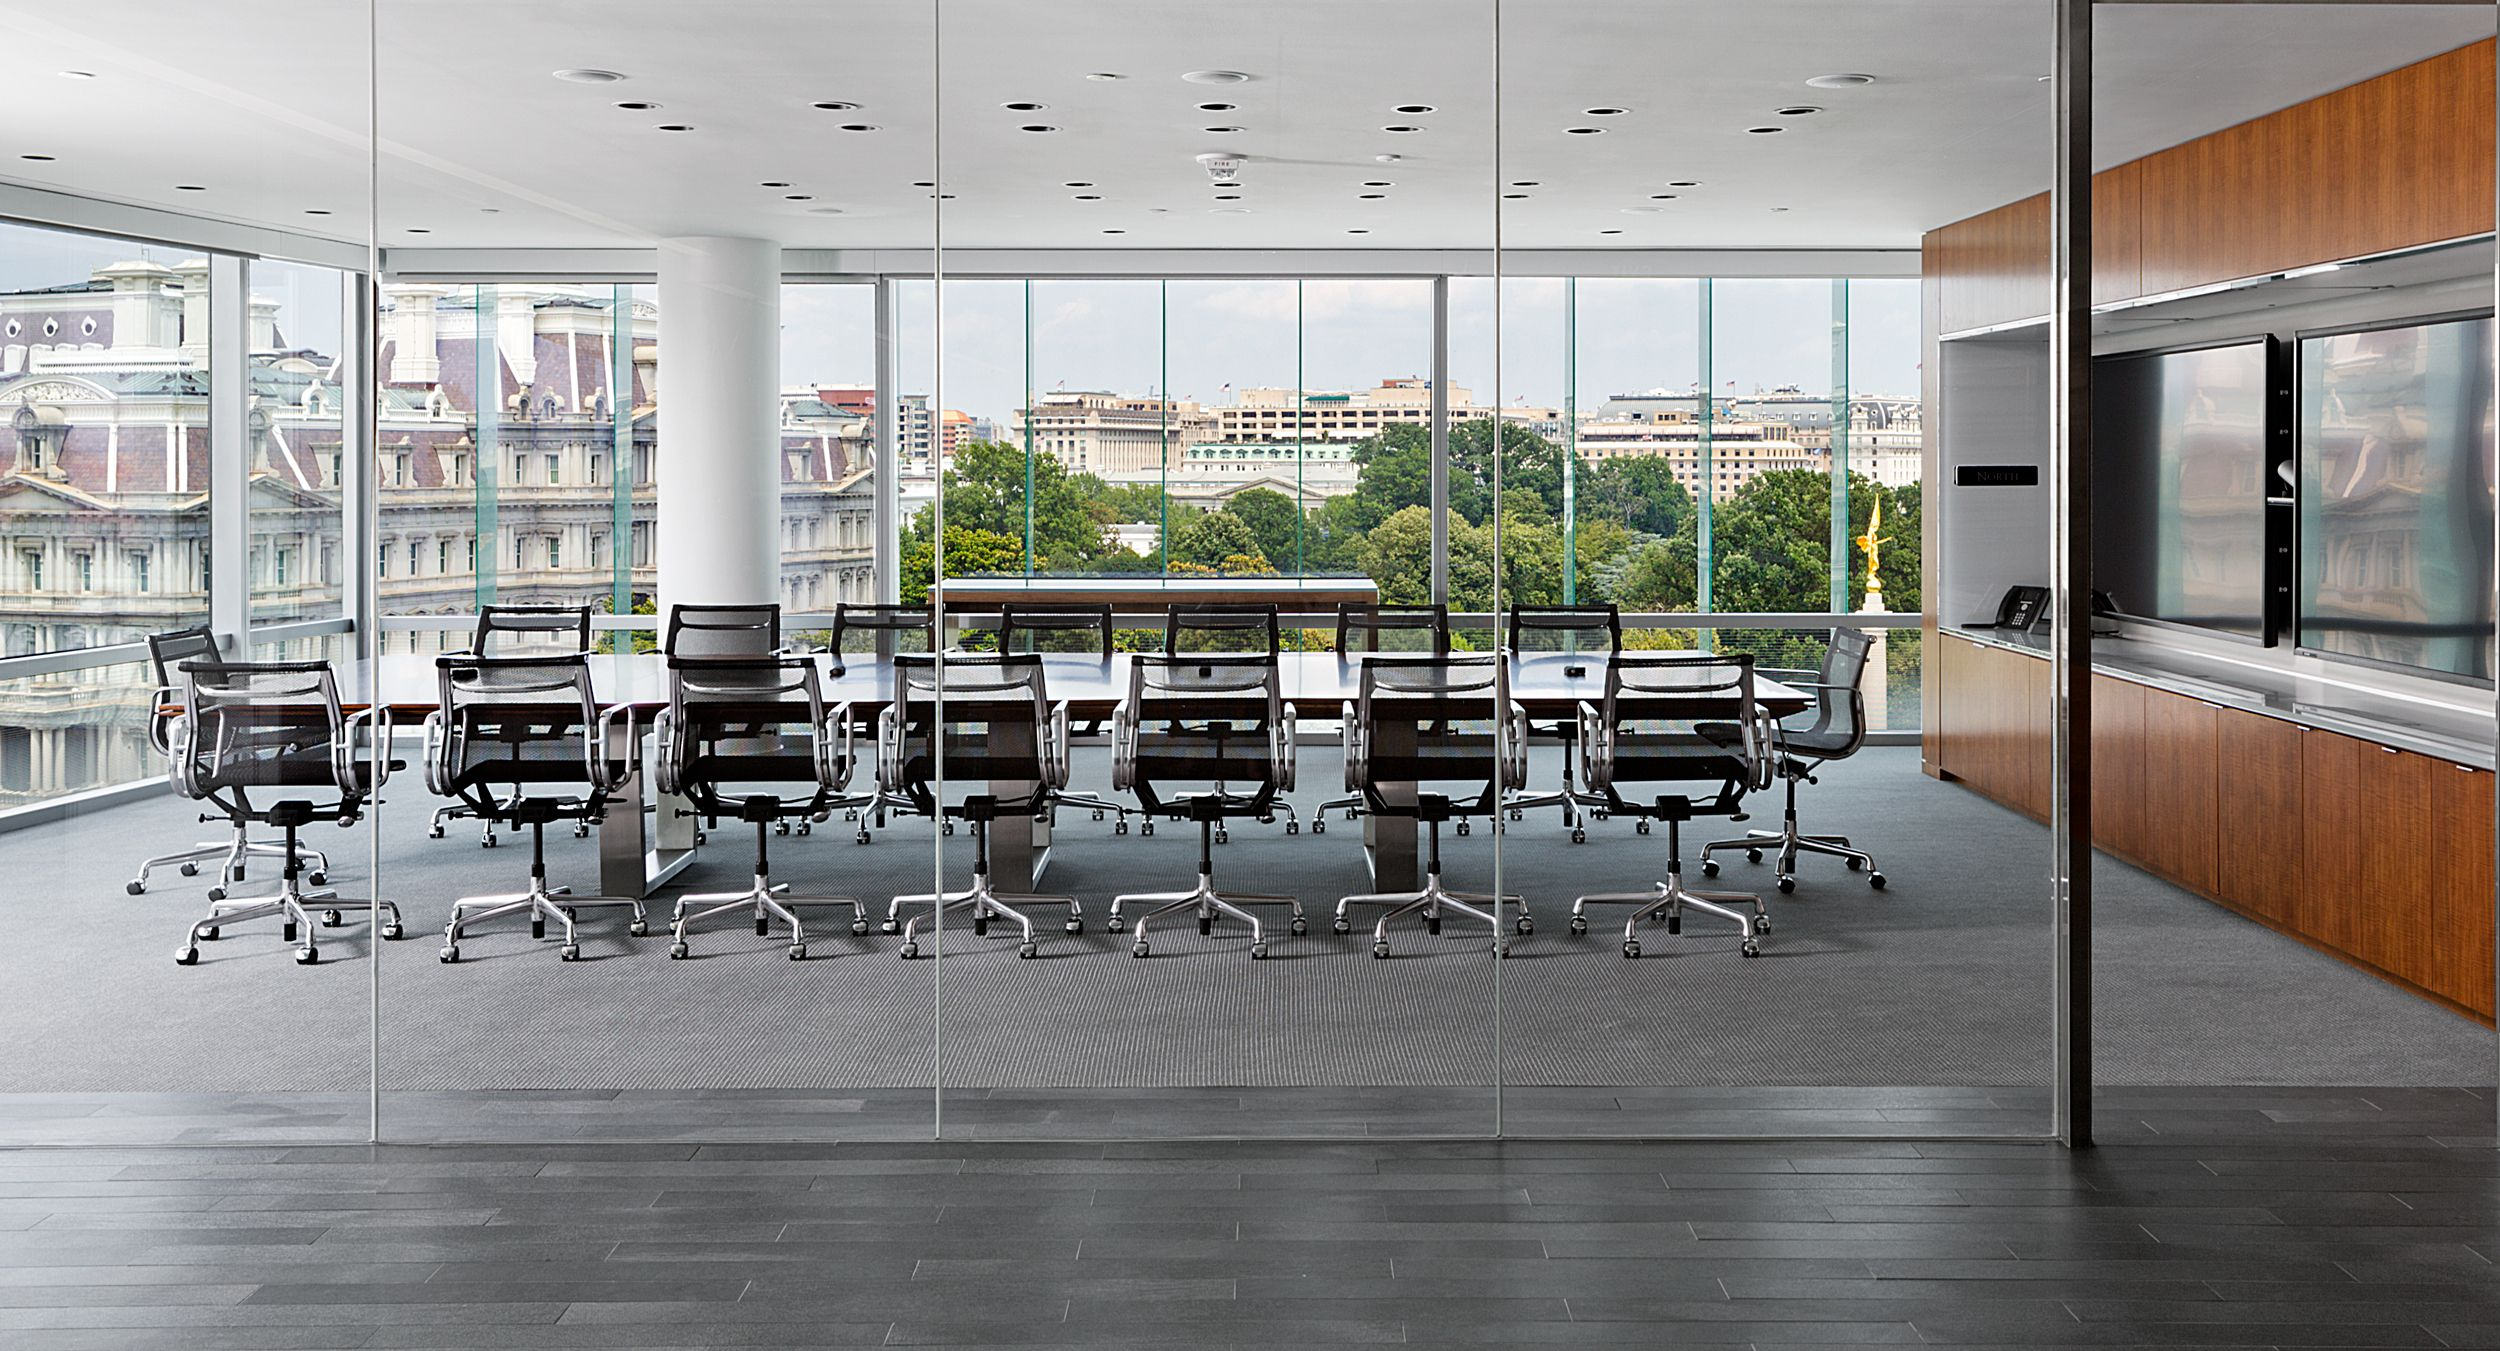 MESA conference tables were provided with light-scale metal bases to enhance the dramatic, open-air space.